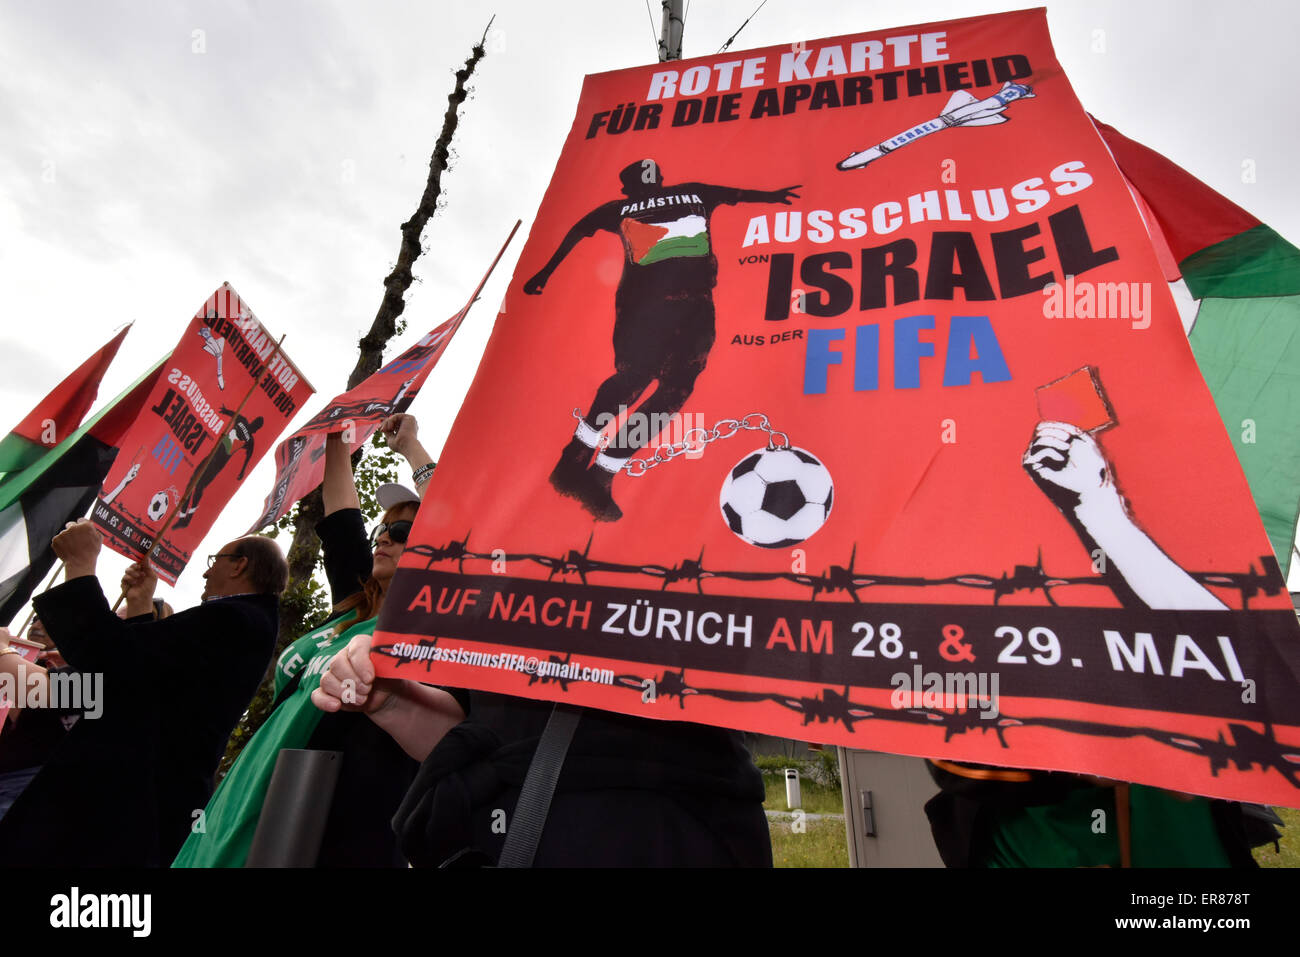 Zurich, Switzerland. 29th May, 2015. Protesters are holding up posters saying 'red card for apartheid' and - Stock Image